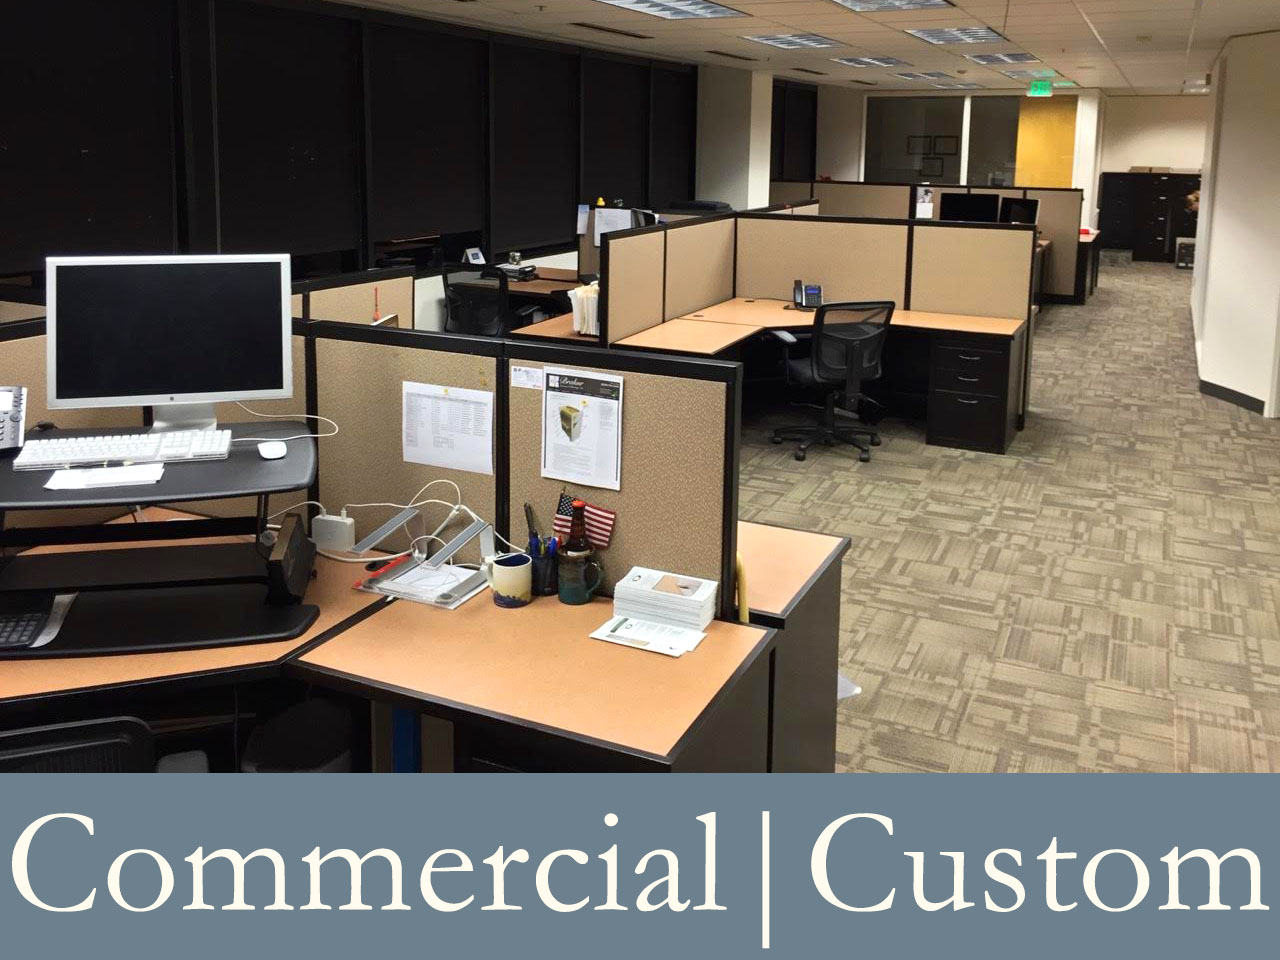 Commercial | Custom Furnishings